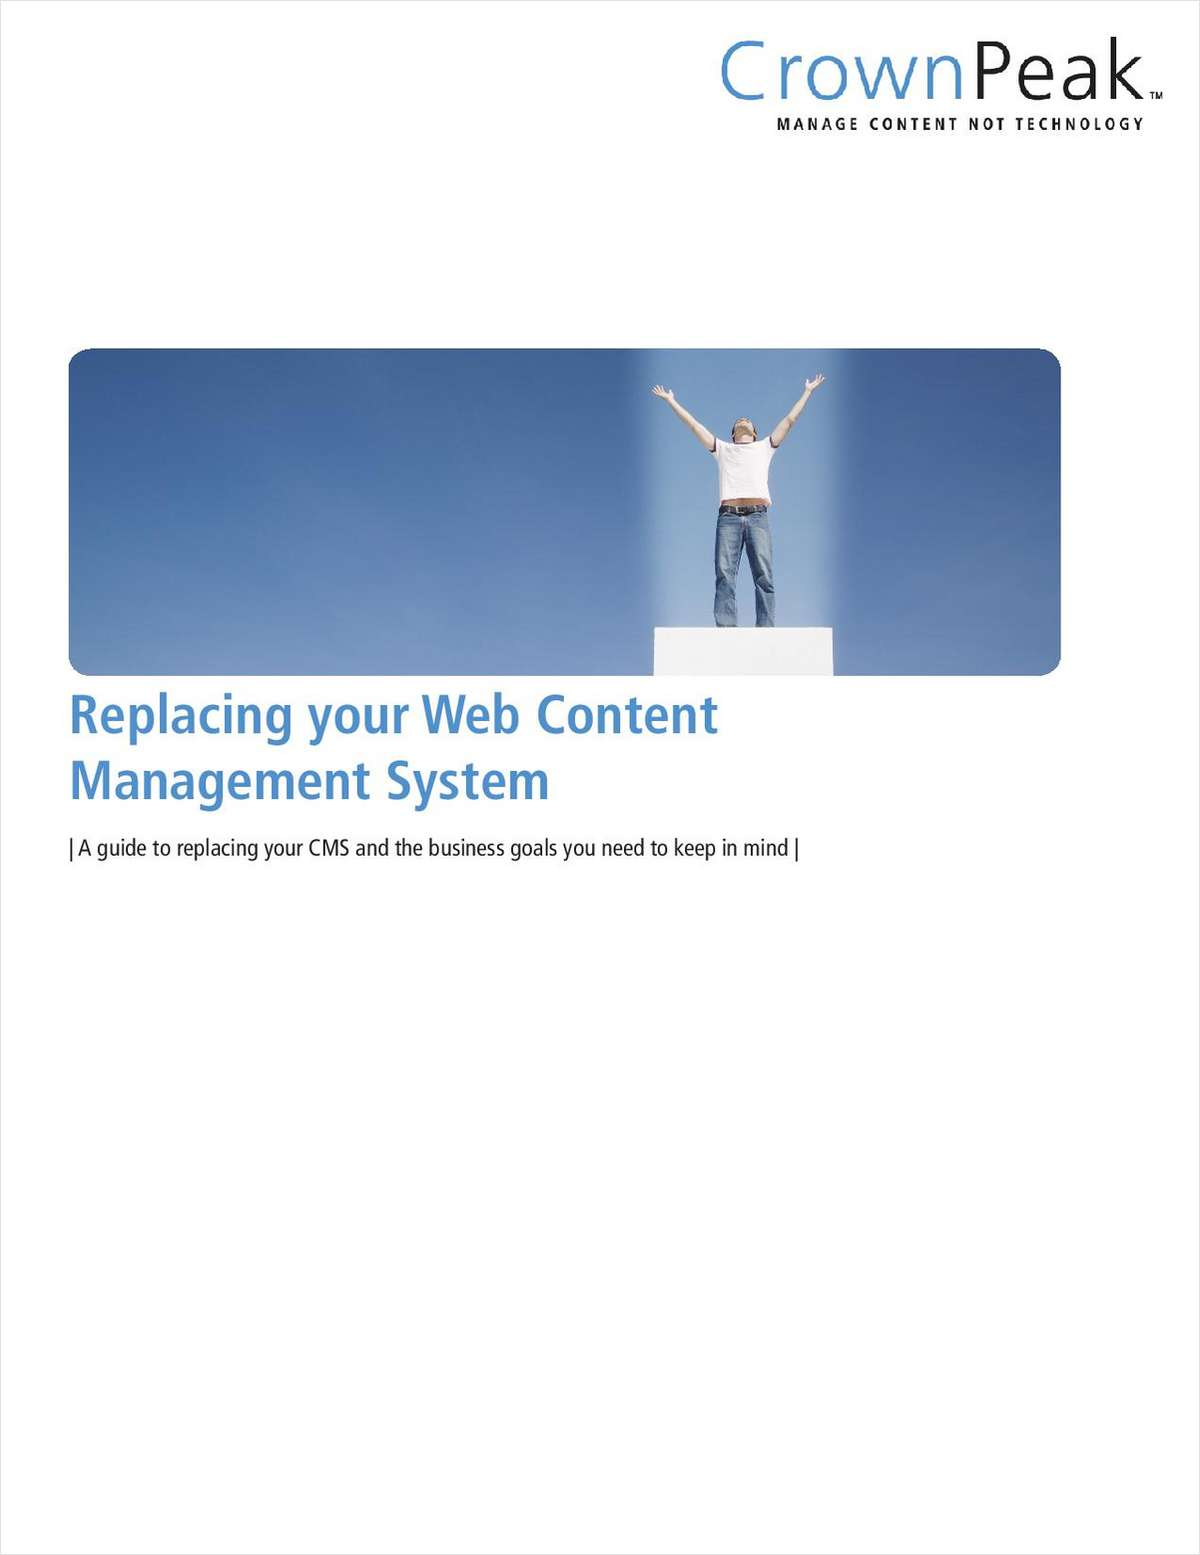 Replacing your Web Content Management System